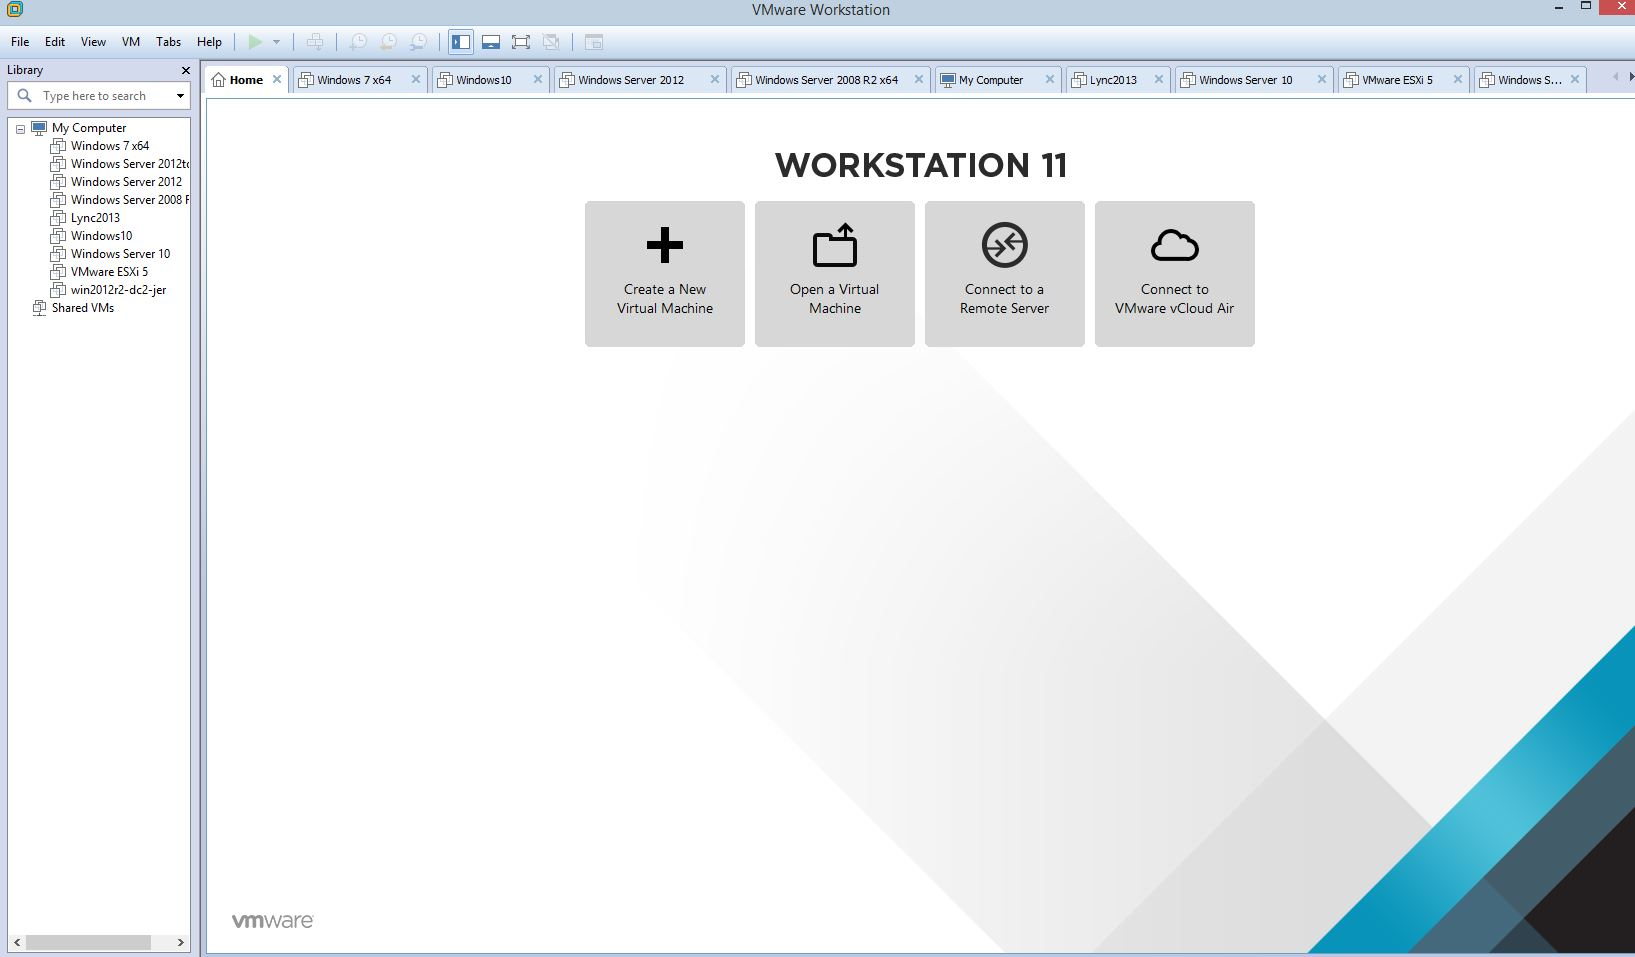 VMware Workstation 11.0 Release What's New